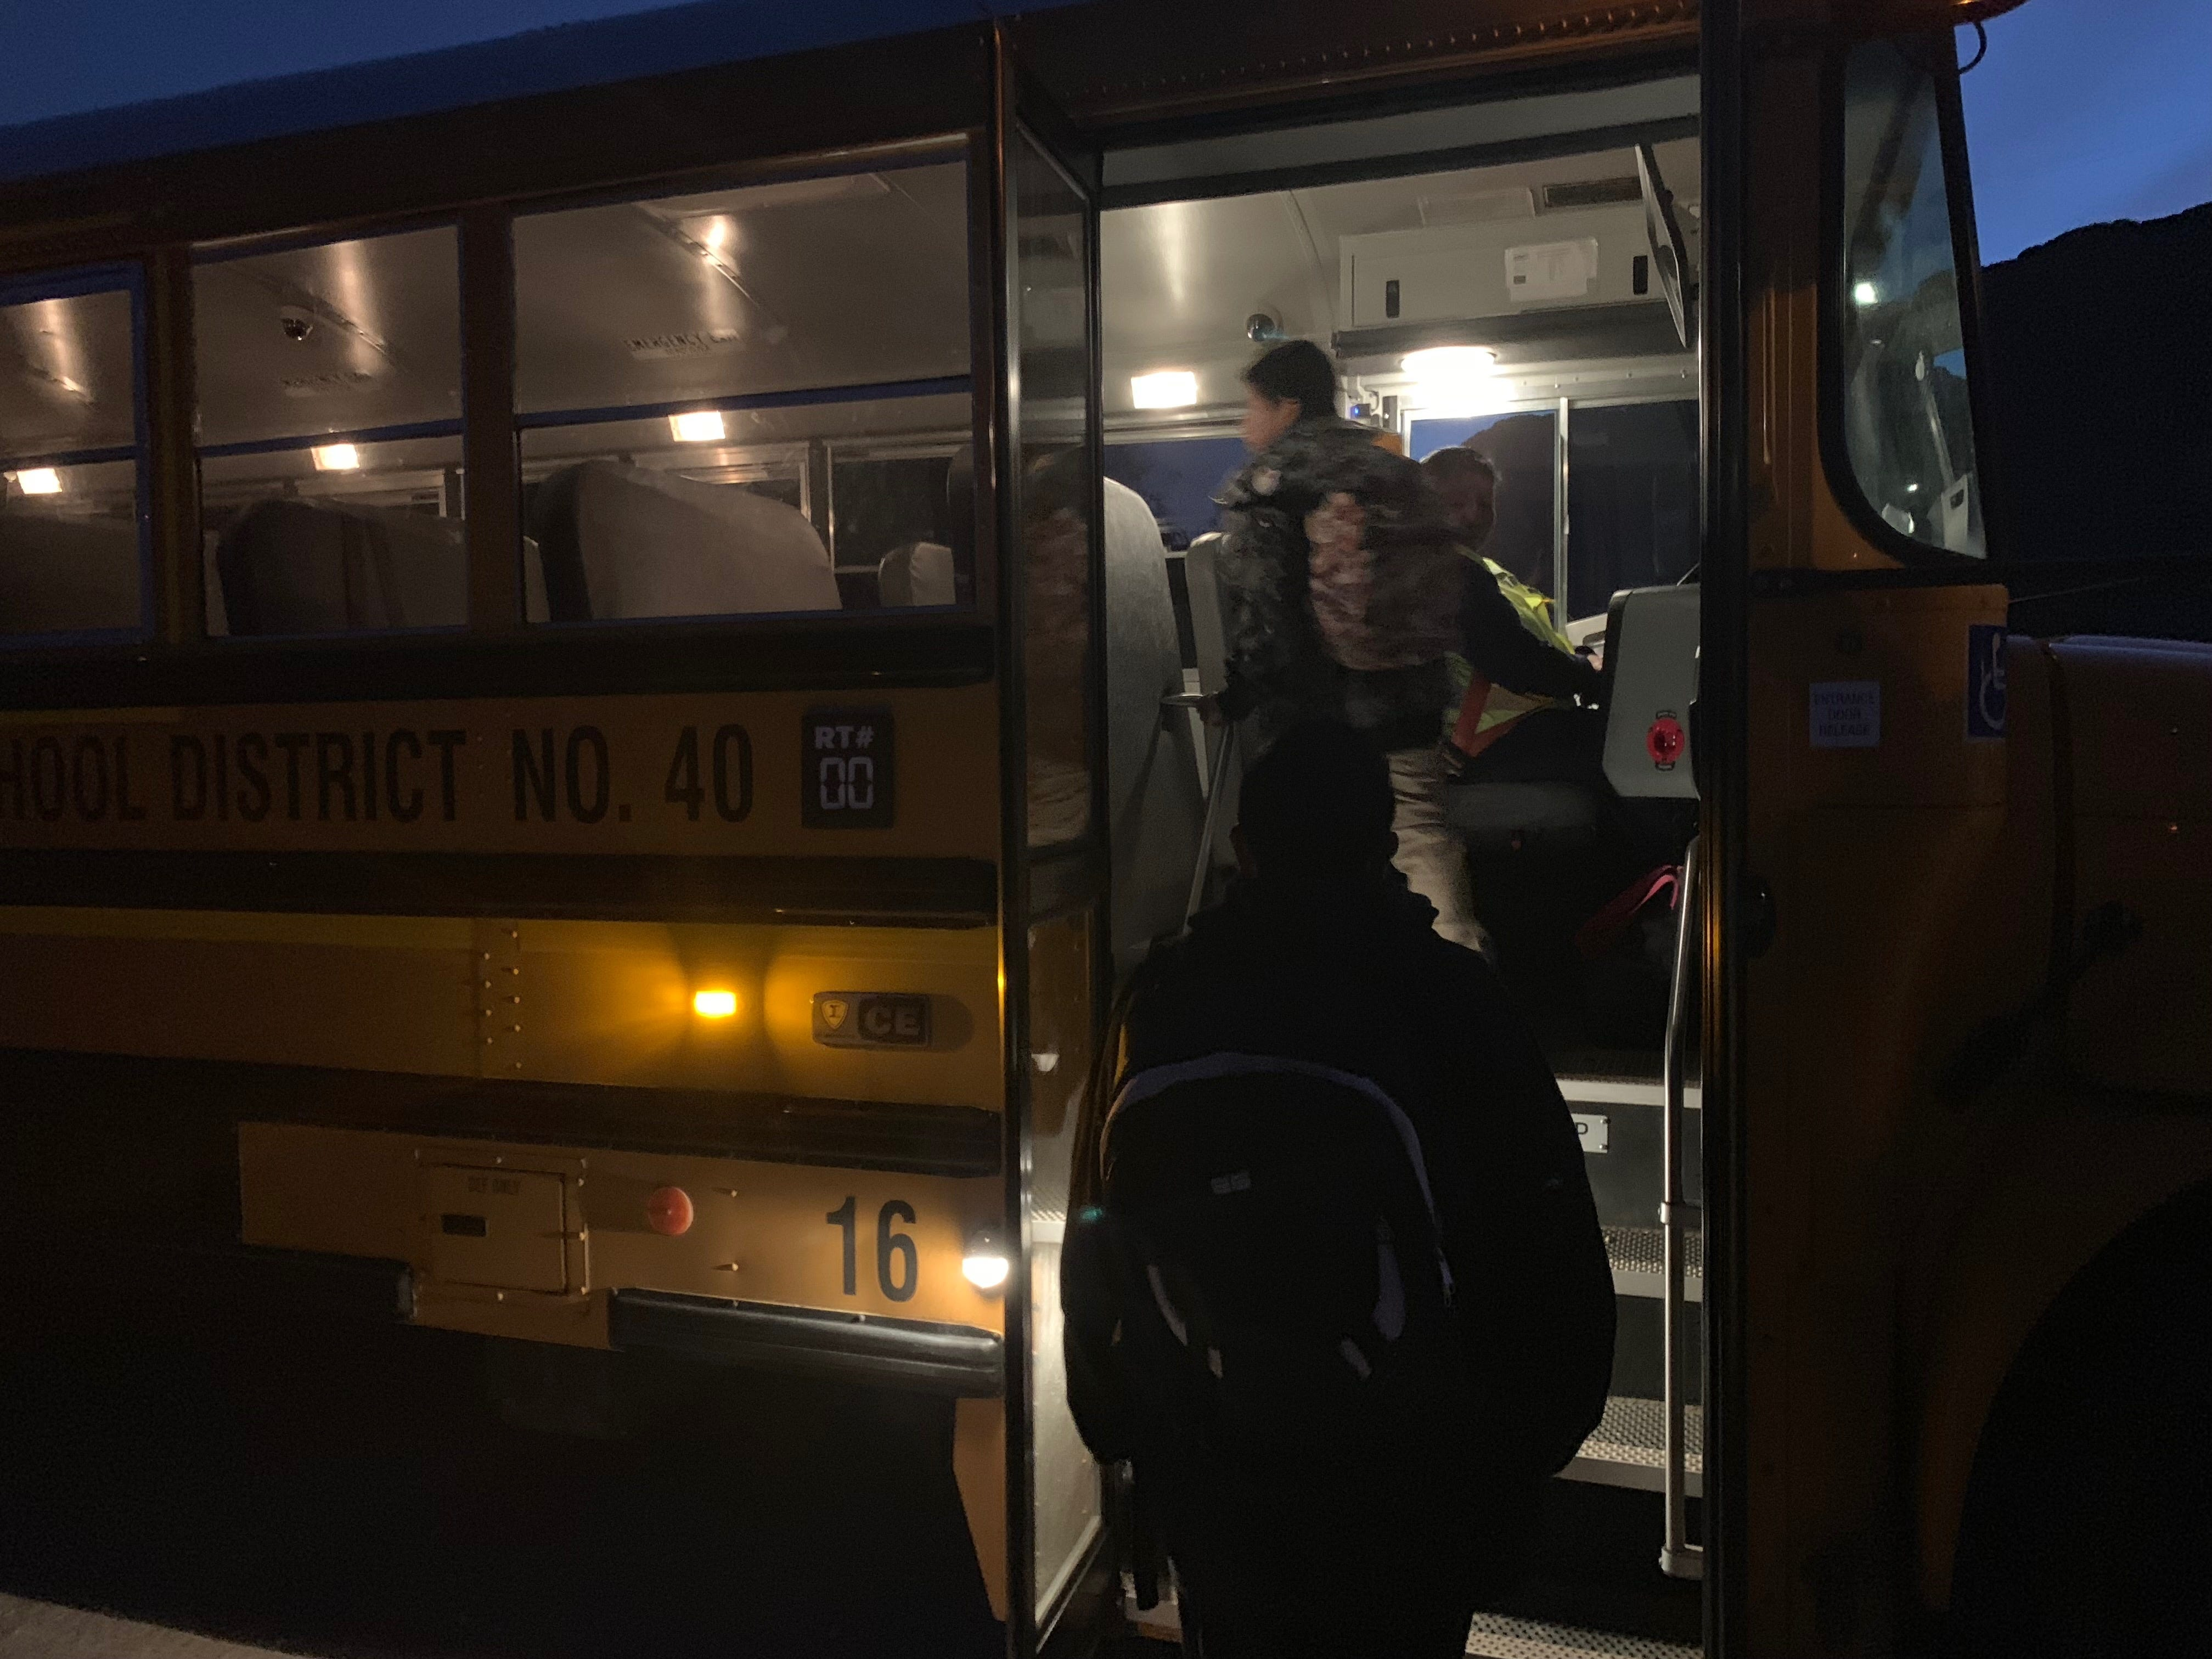 Students in the Baboquivari Unified School District board their bus early in the morning to head to school.